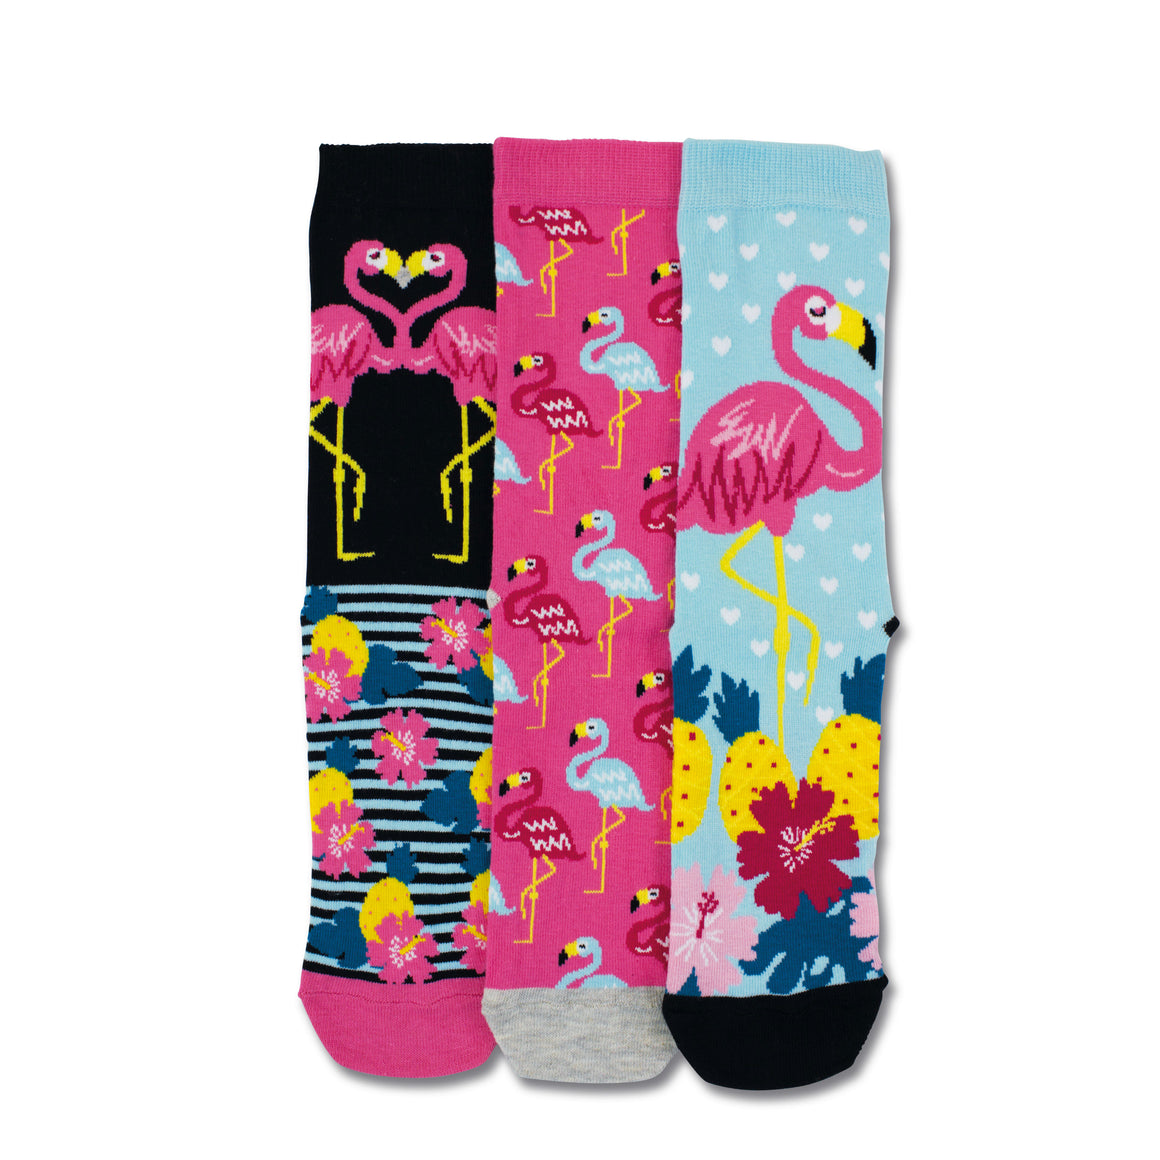 United Odd Socks Martha Flamingo Socks Ladies 3 Pack